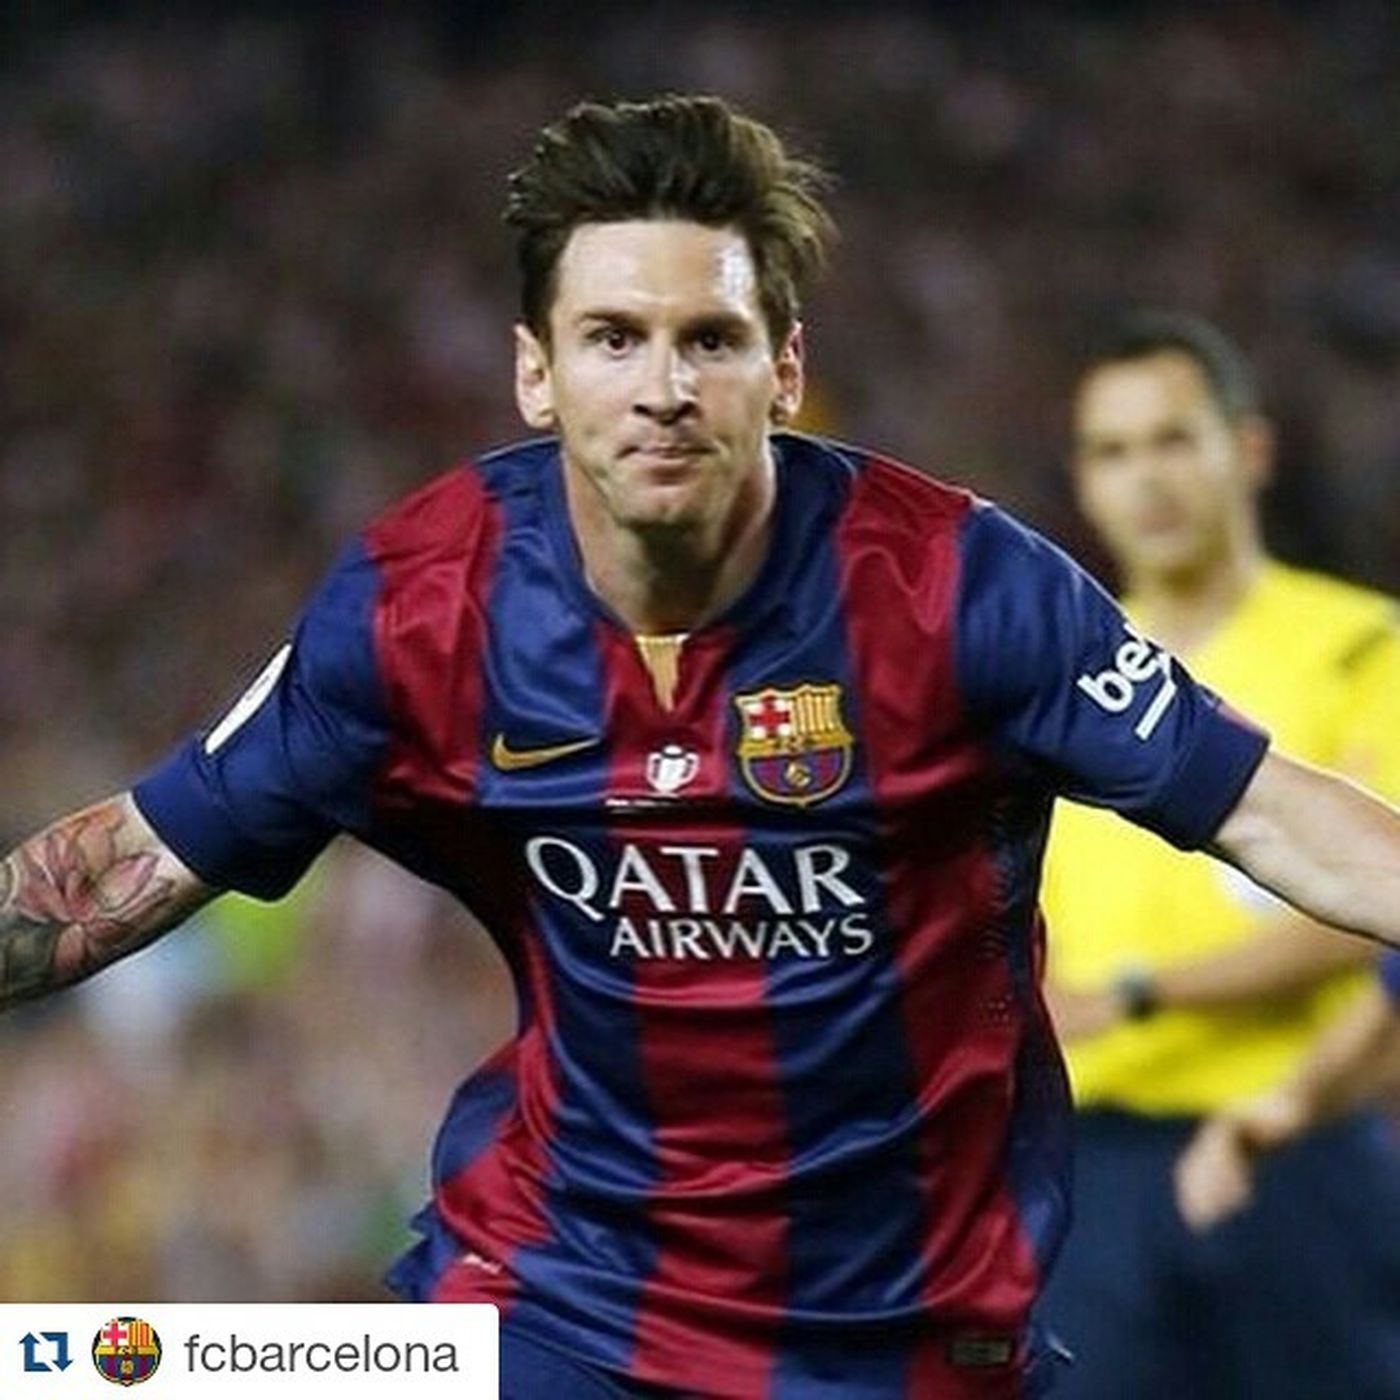 This guy was absolutely on fire last night he proved to his haters that why he is the best Repost @fcbarcelona ・・・ What did you think of Messi's goal? Can you define it in the form of a hashtag? Com has vist el 0-1 de Messi? T'atreveixes a definir-lo amb un hashtag? ¿Cómo has visto el 0-1 de Messi? ¿Te atreves a definirlo con un hashtag? Copafcb FinalCopa @leomessi @fcbarcelona Campionsfcb